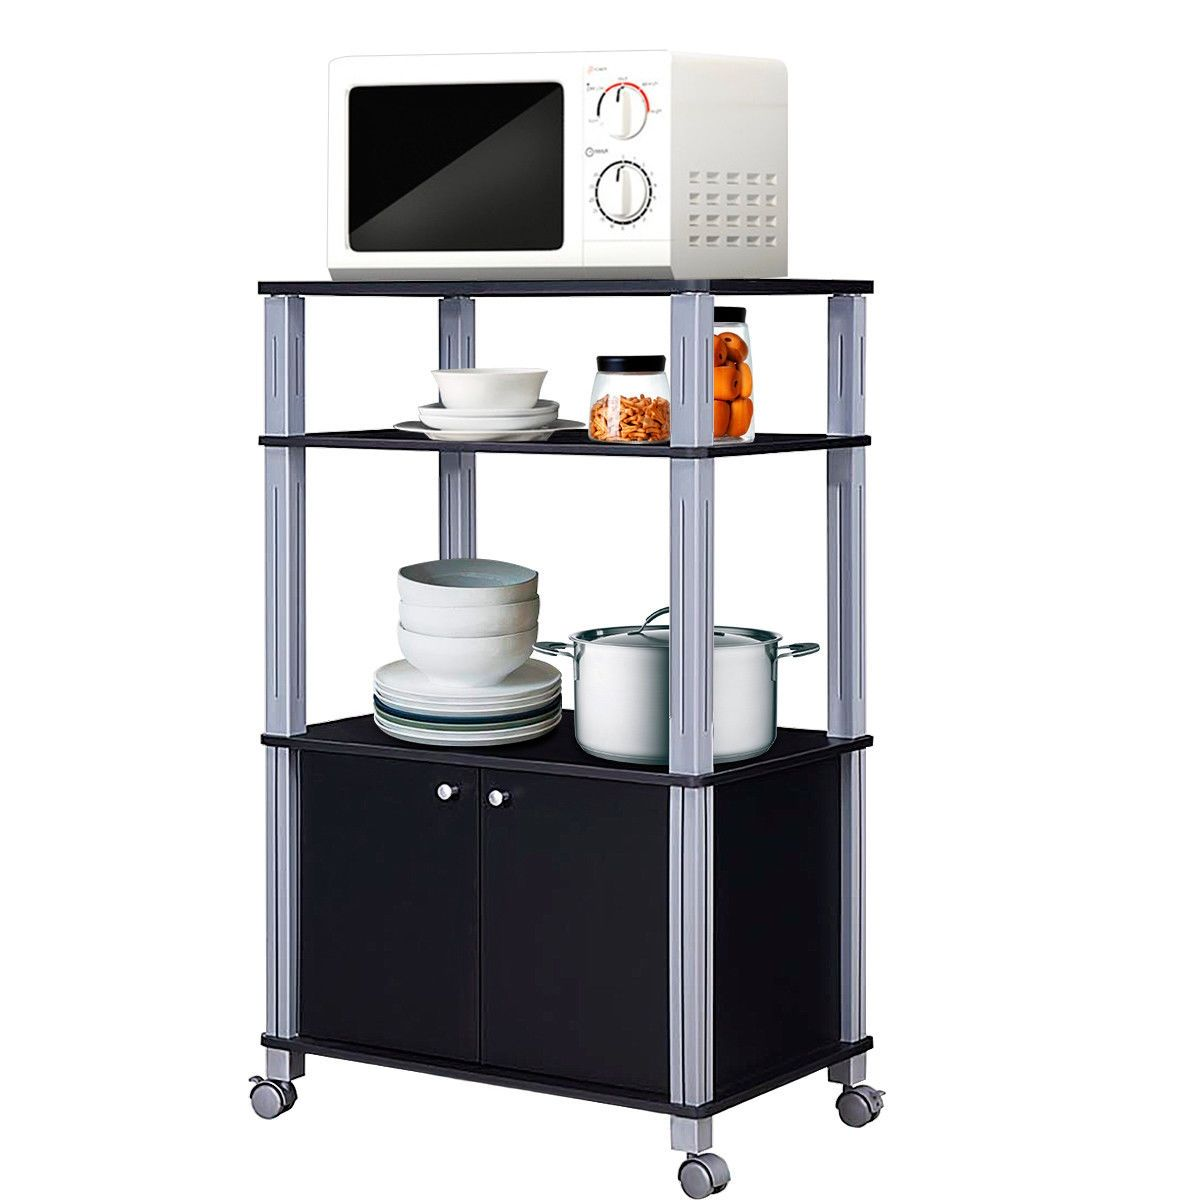 Bakers Rack Microwave Stand Rolling Storage Cart Black In 2020